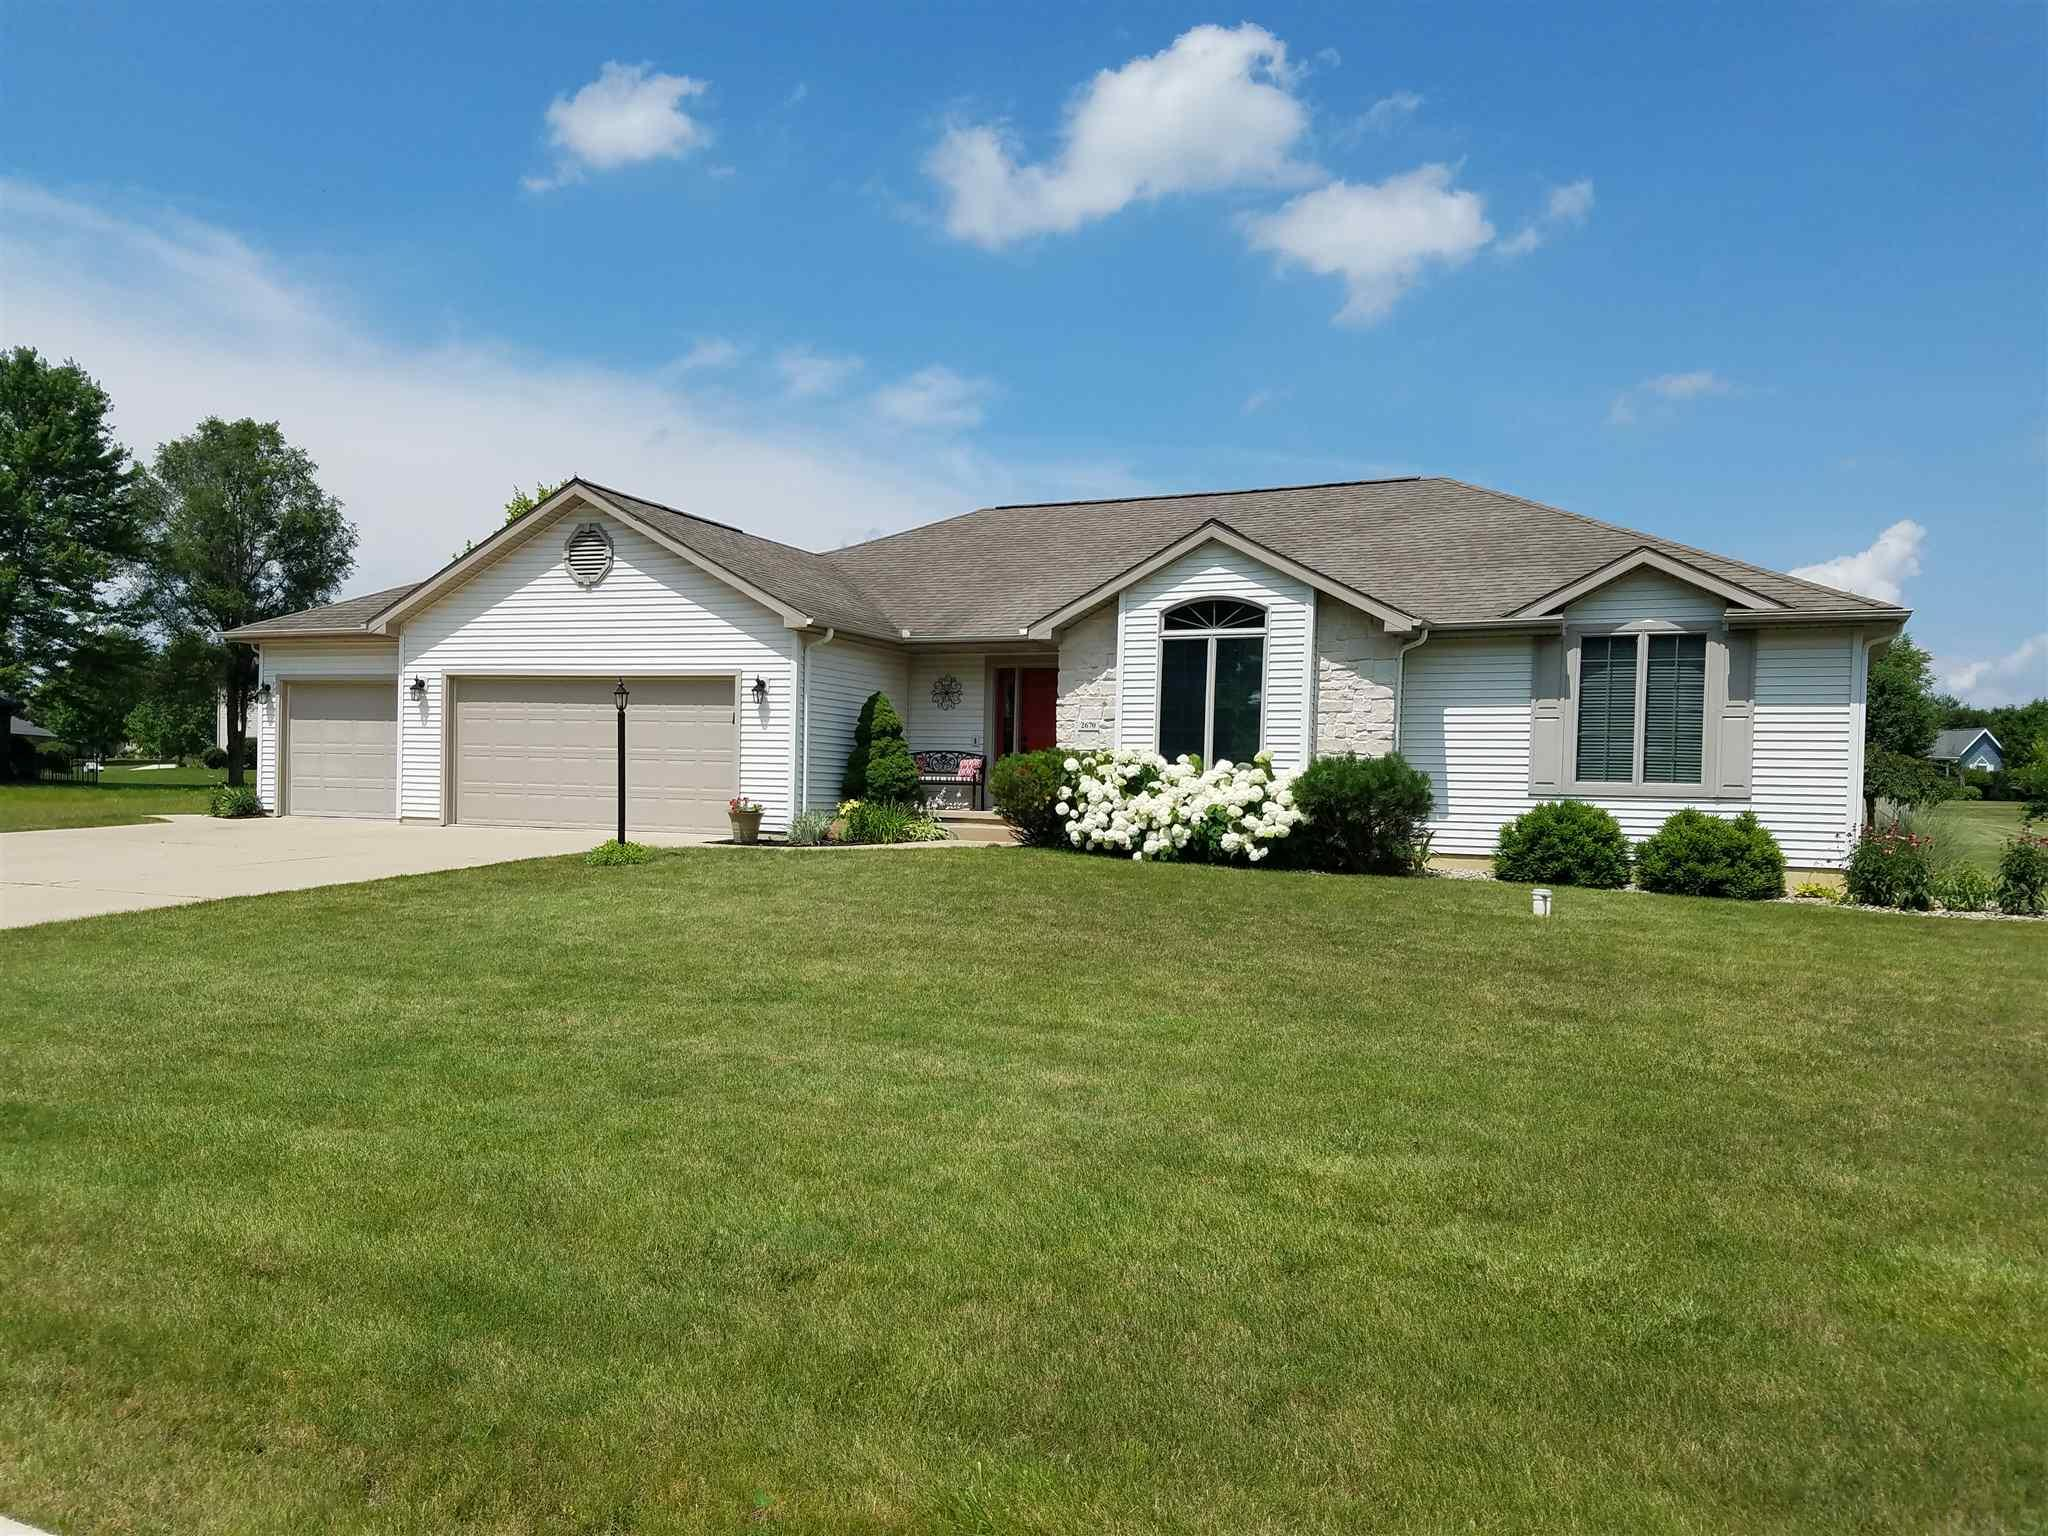 Winona Lake Homes for Sale | Encore Sotheby's International